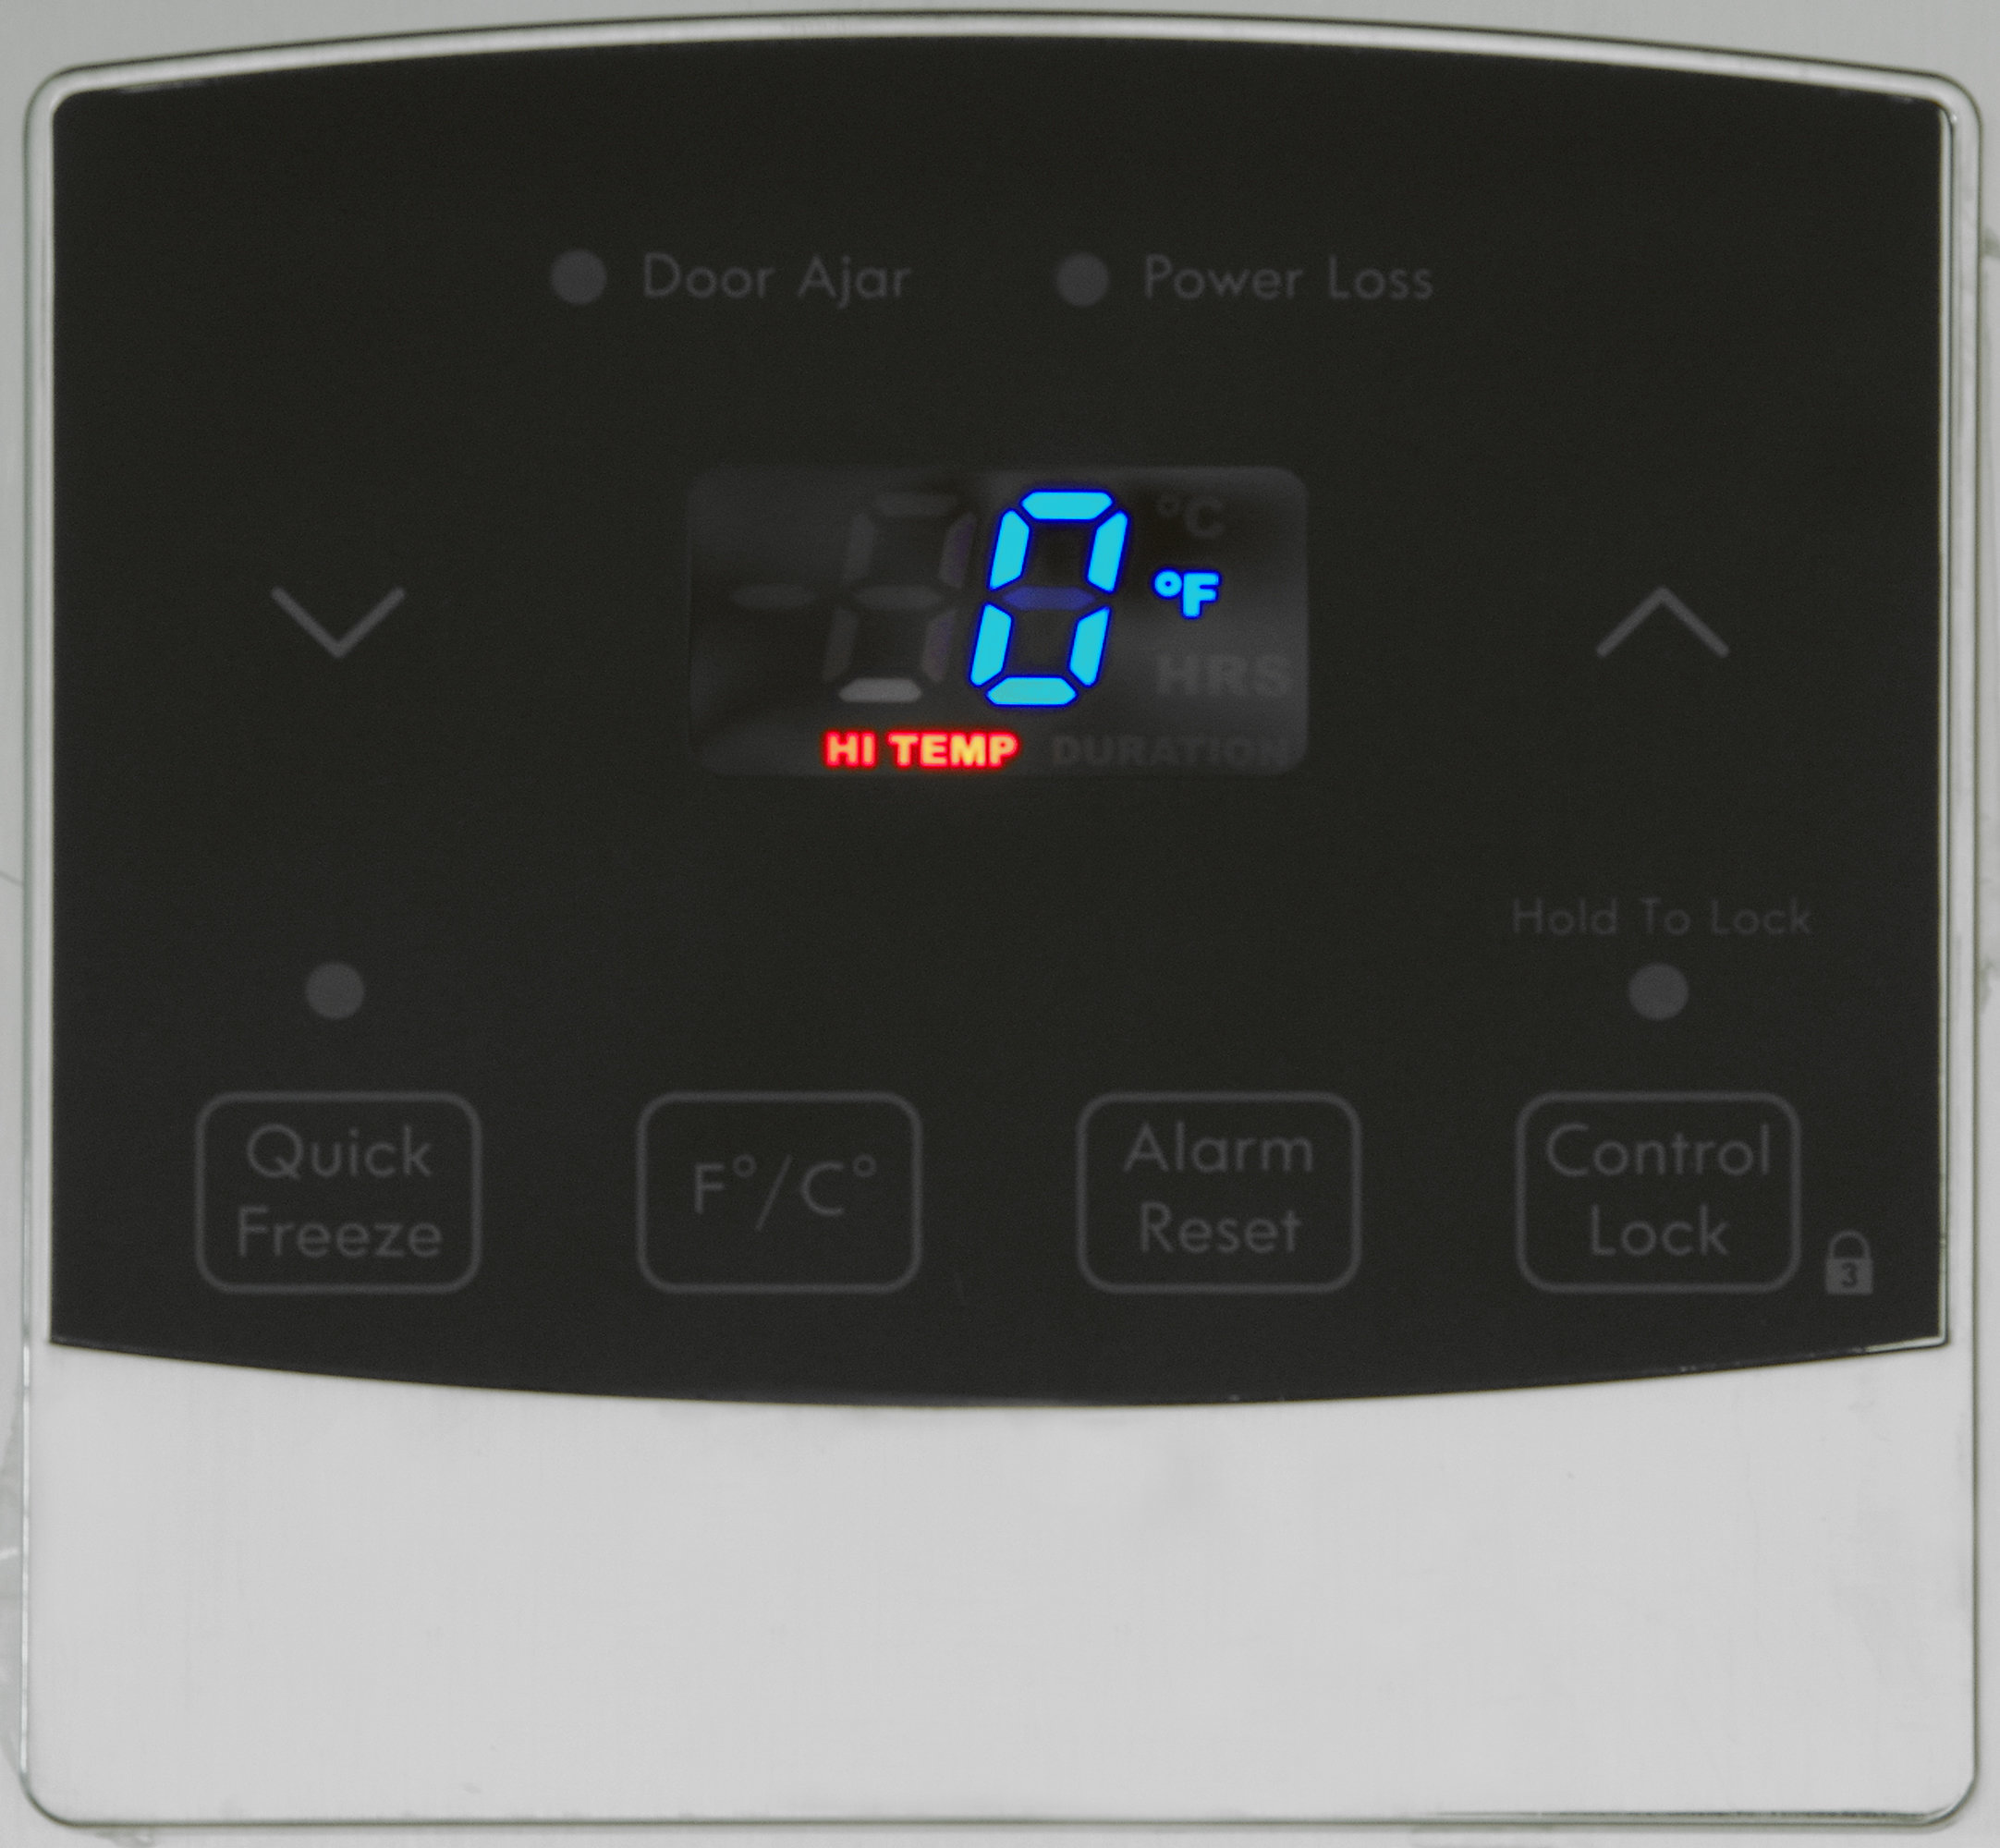 As a higher-end product, the Kenmore Elite 28093 uses a degree-based thermostat.